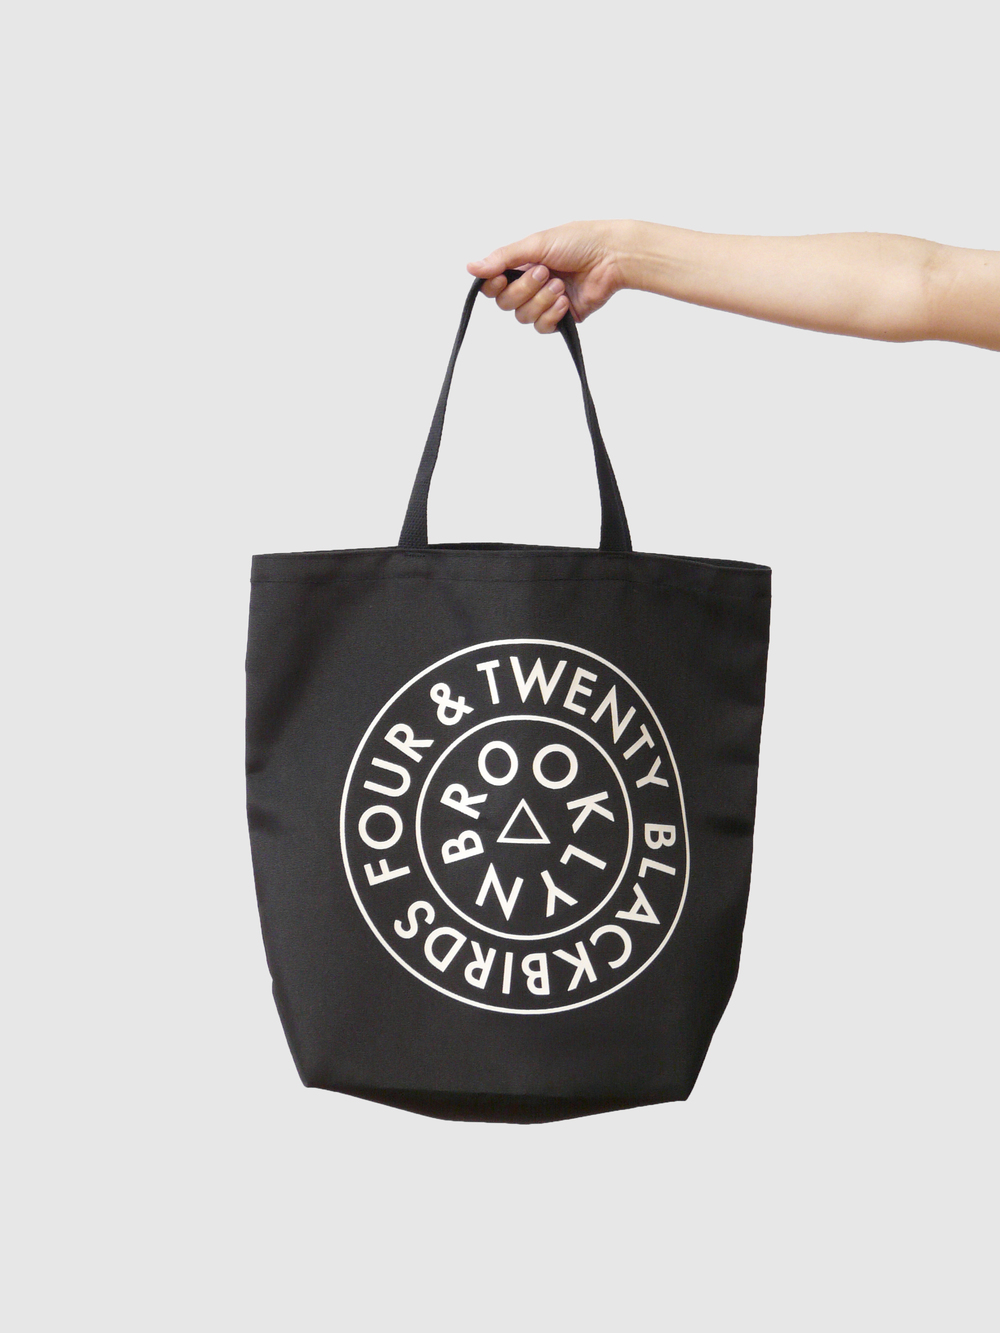 New_Work_Studio_FourTwentyBlackbirds_tote